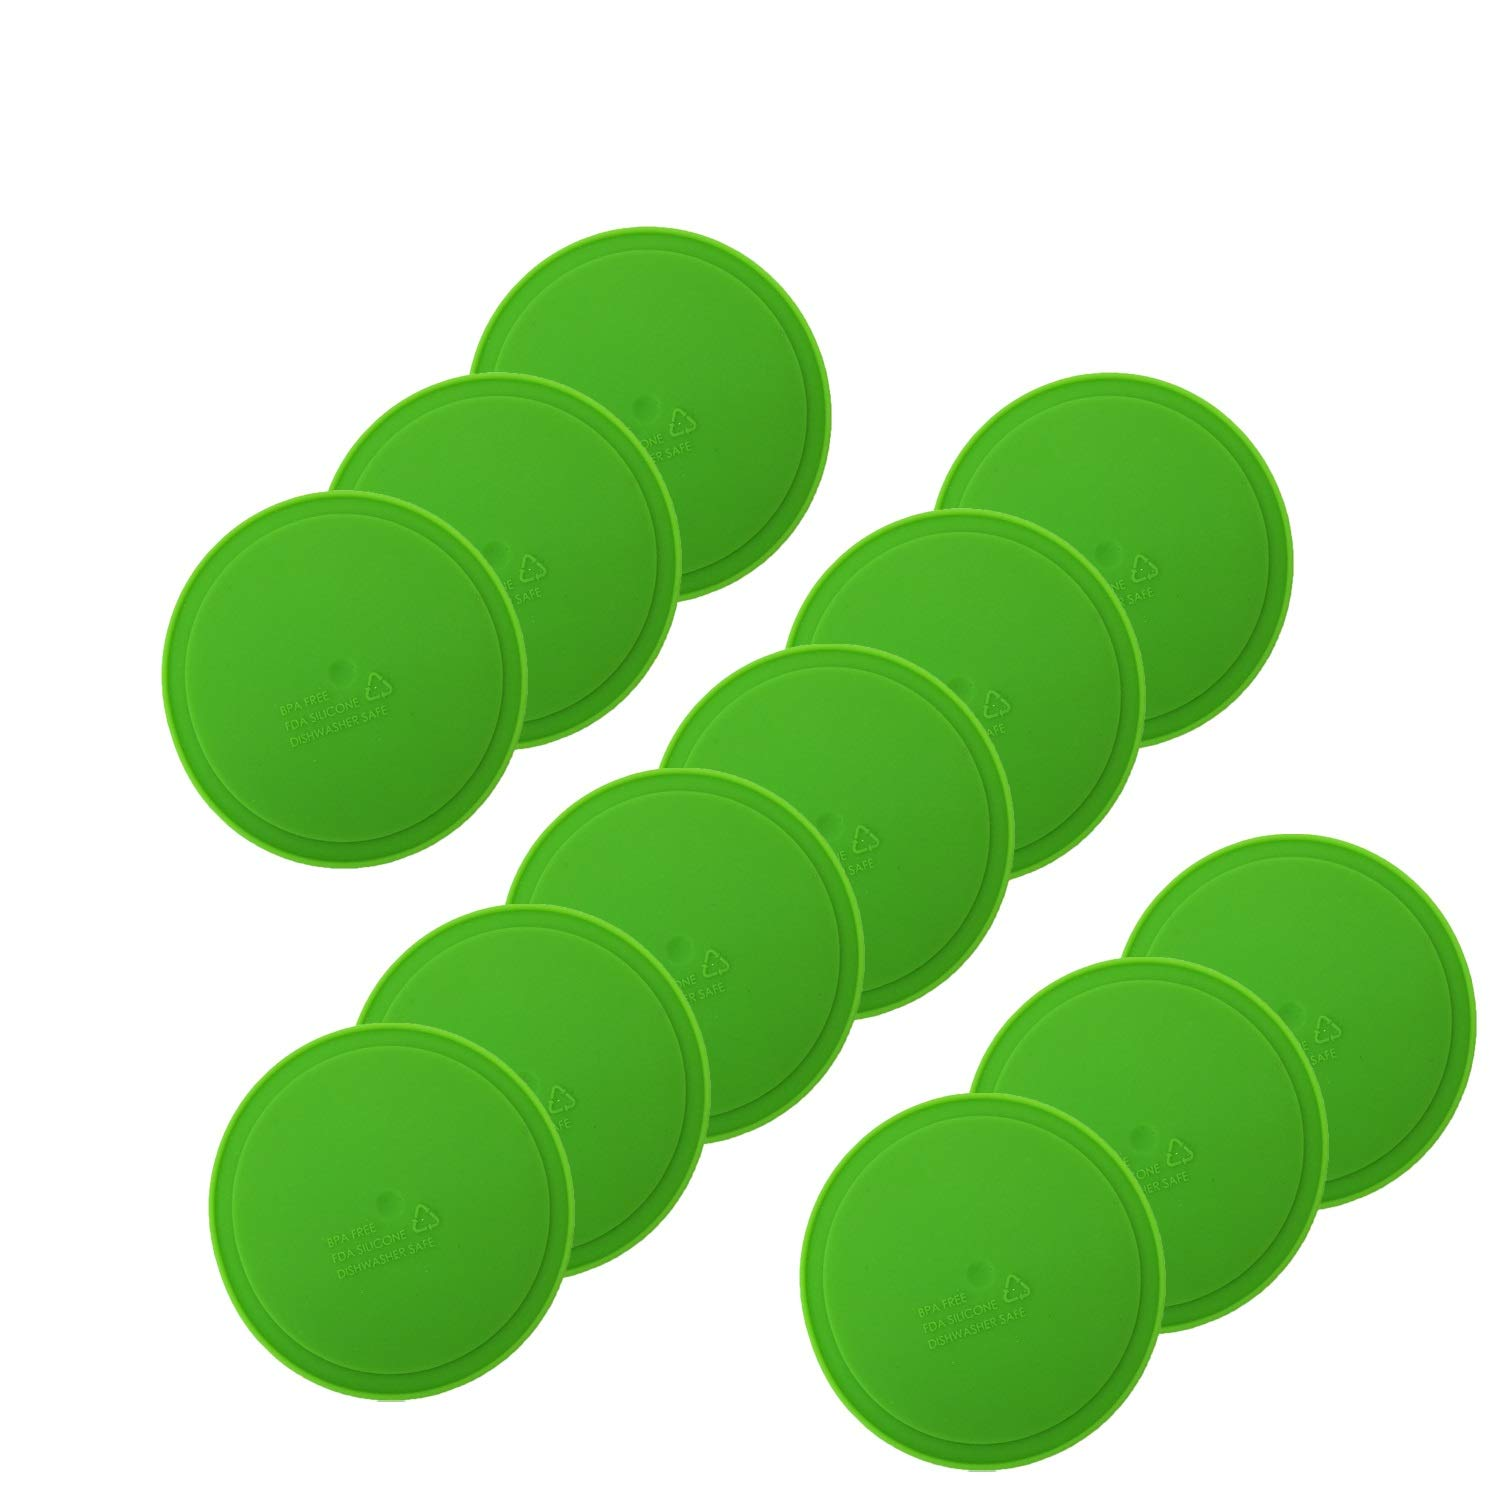 THINKCHANCES Leak Proof Food Safe and BPA Free Silicone Sealing Lid Inserts/Liners for Mason, Ball, Canning Jars (Regular Mouth, Green)